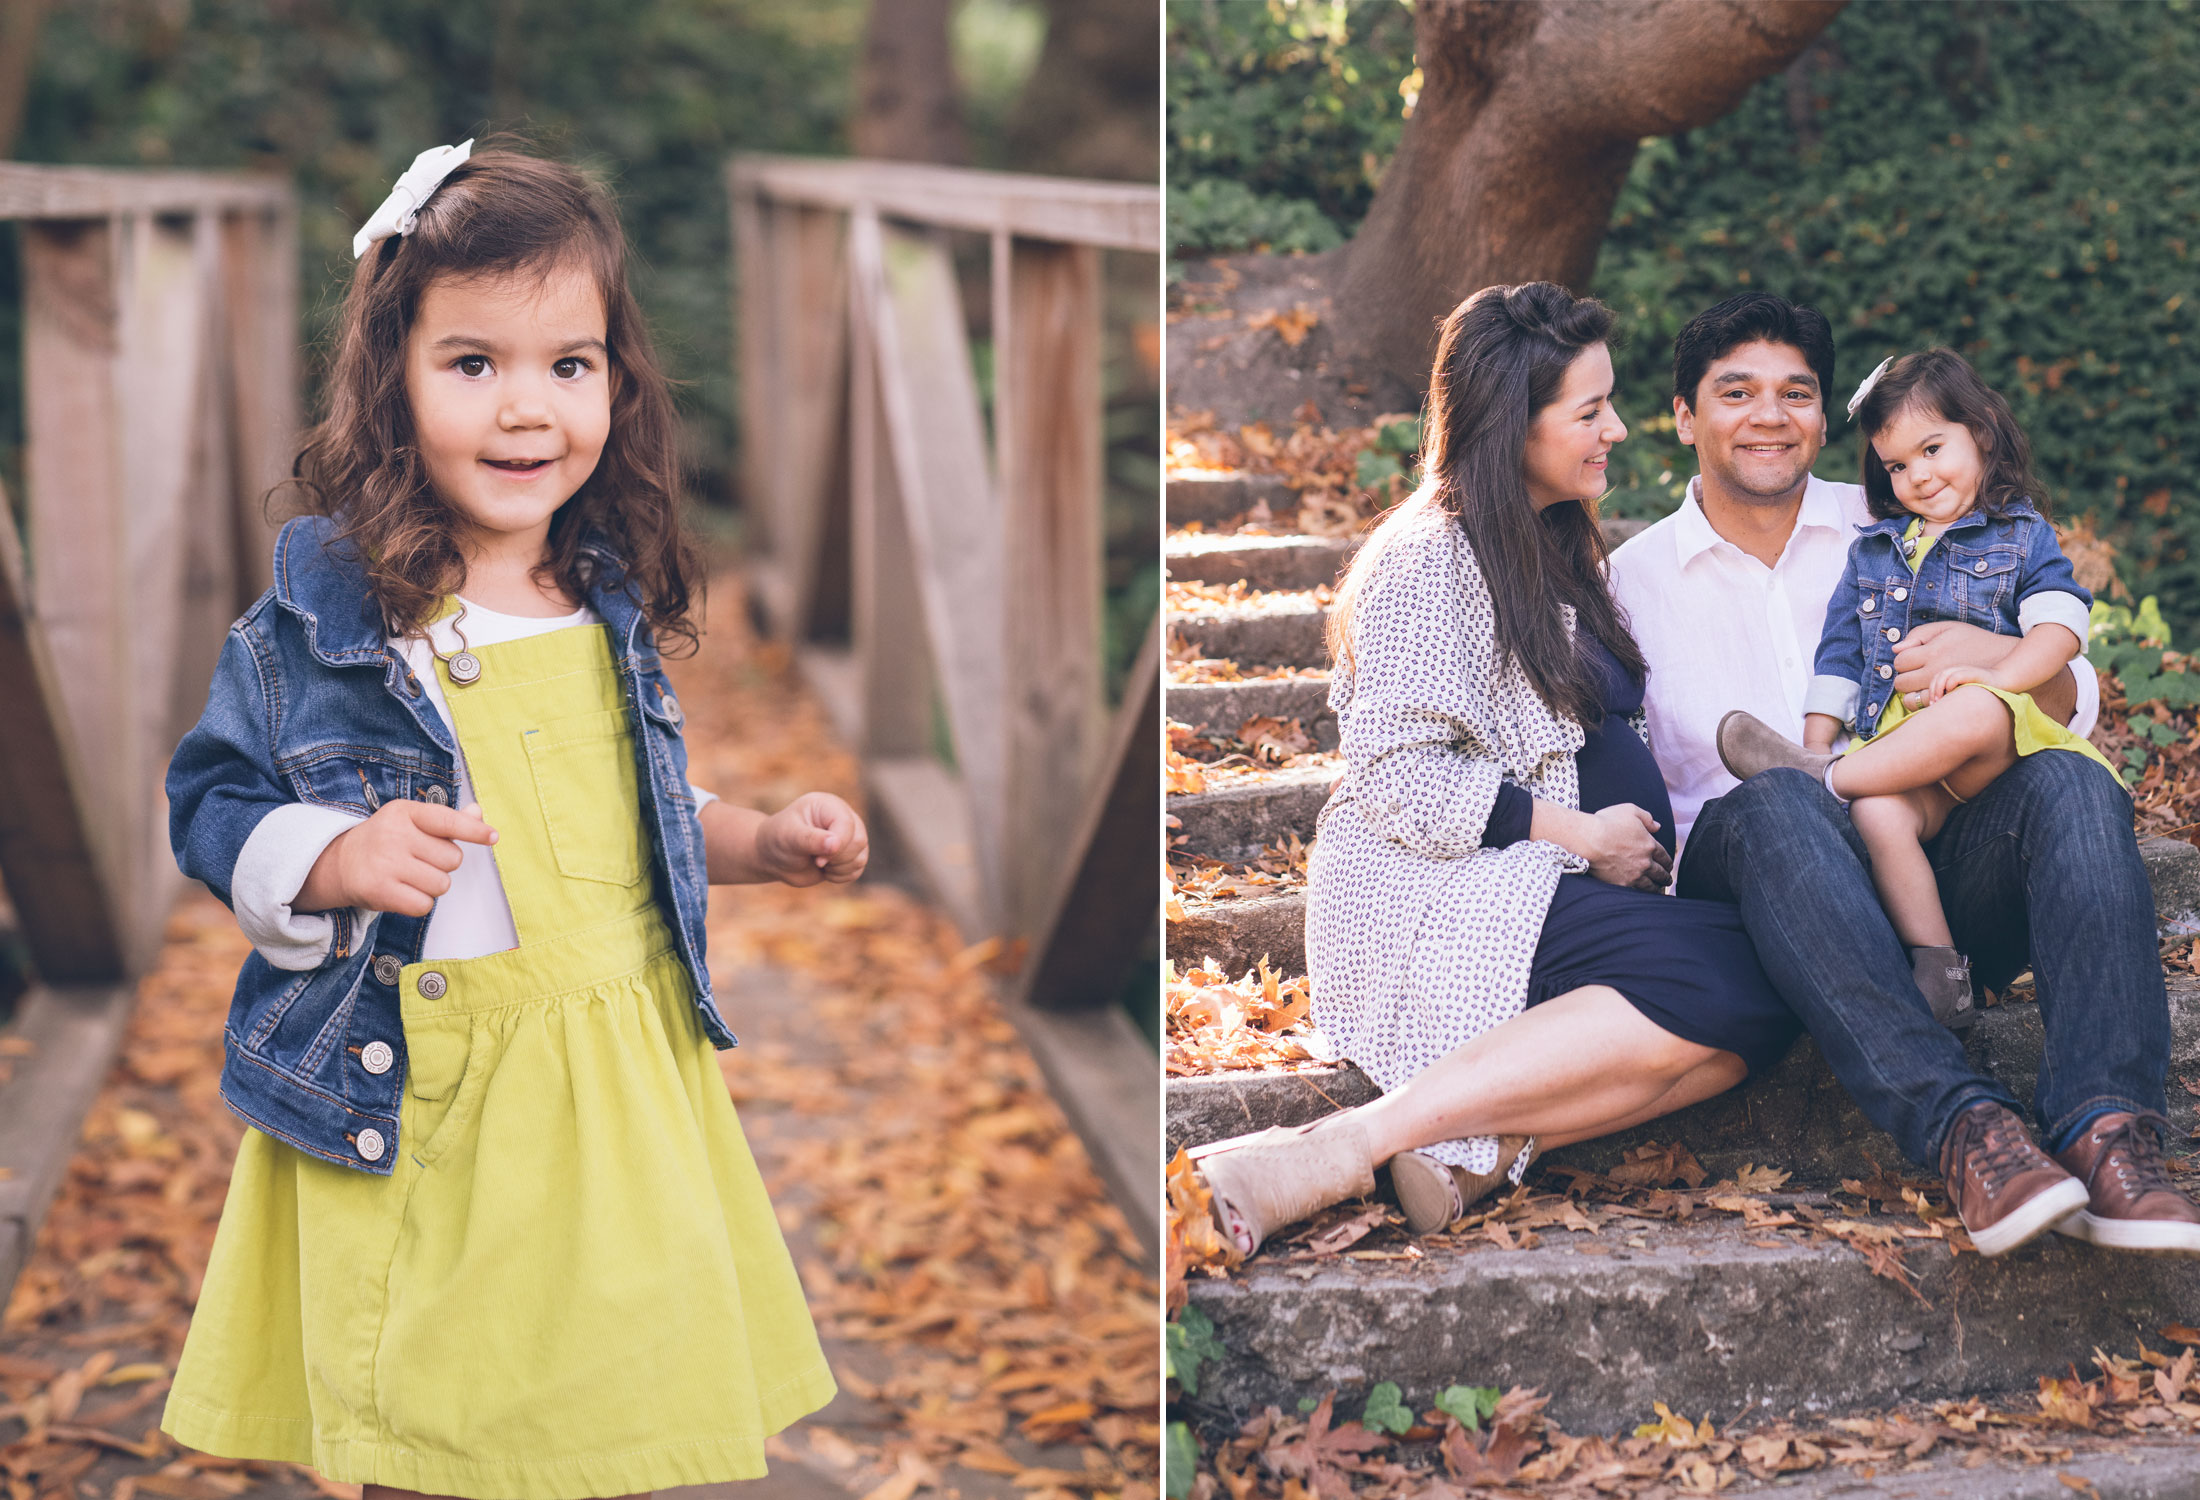 berkeley-family-photoshoot-at-the-berkeley-rose-garden.jpg